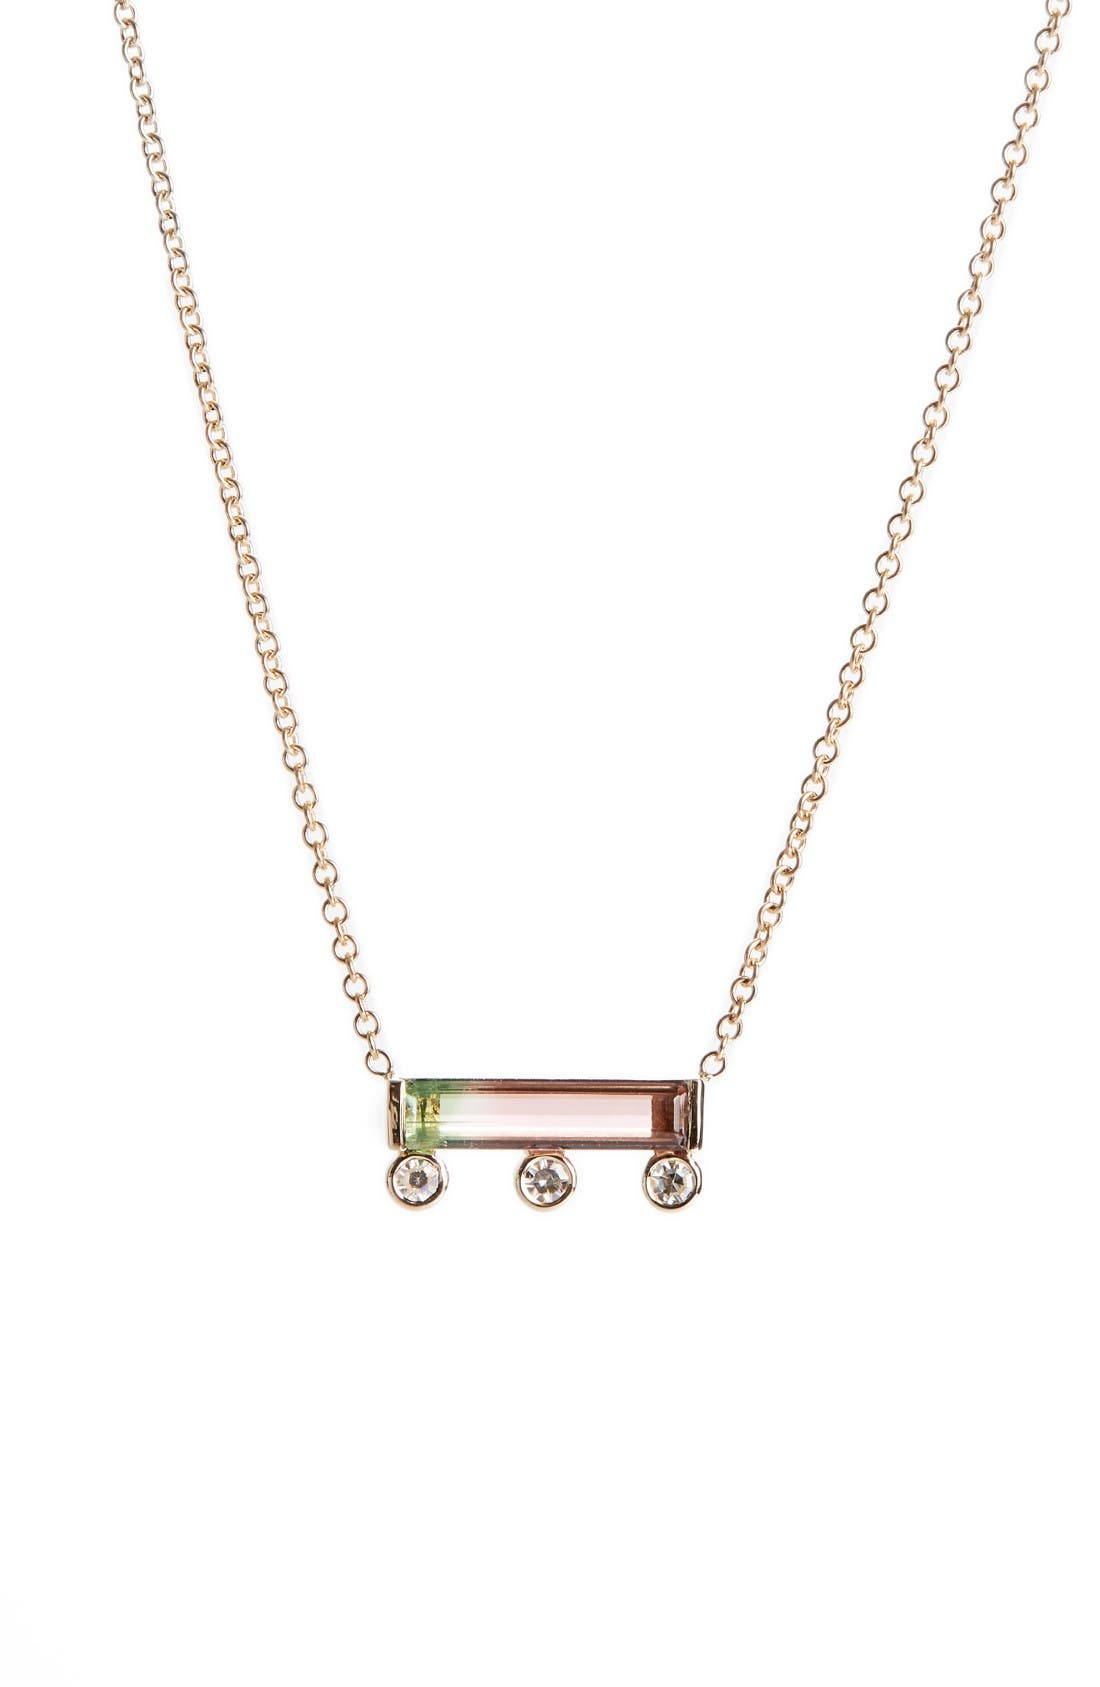 MOCIUN Watermelon Tourmaline & Diamond Necklace